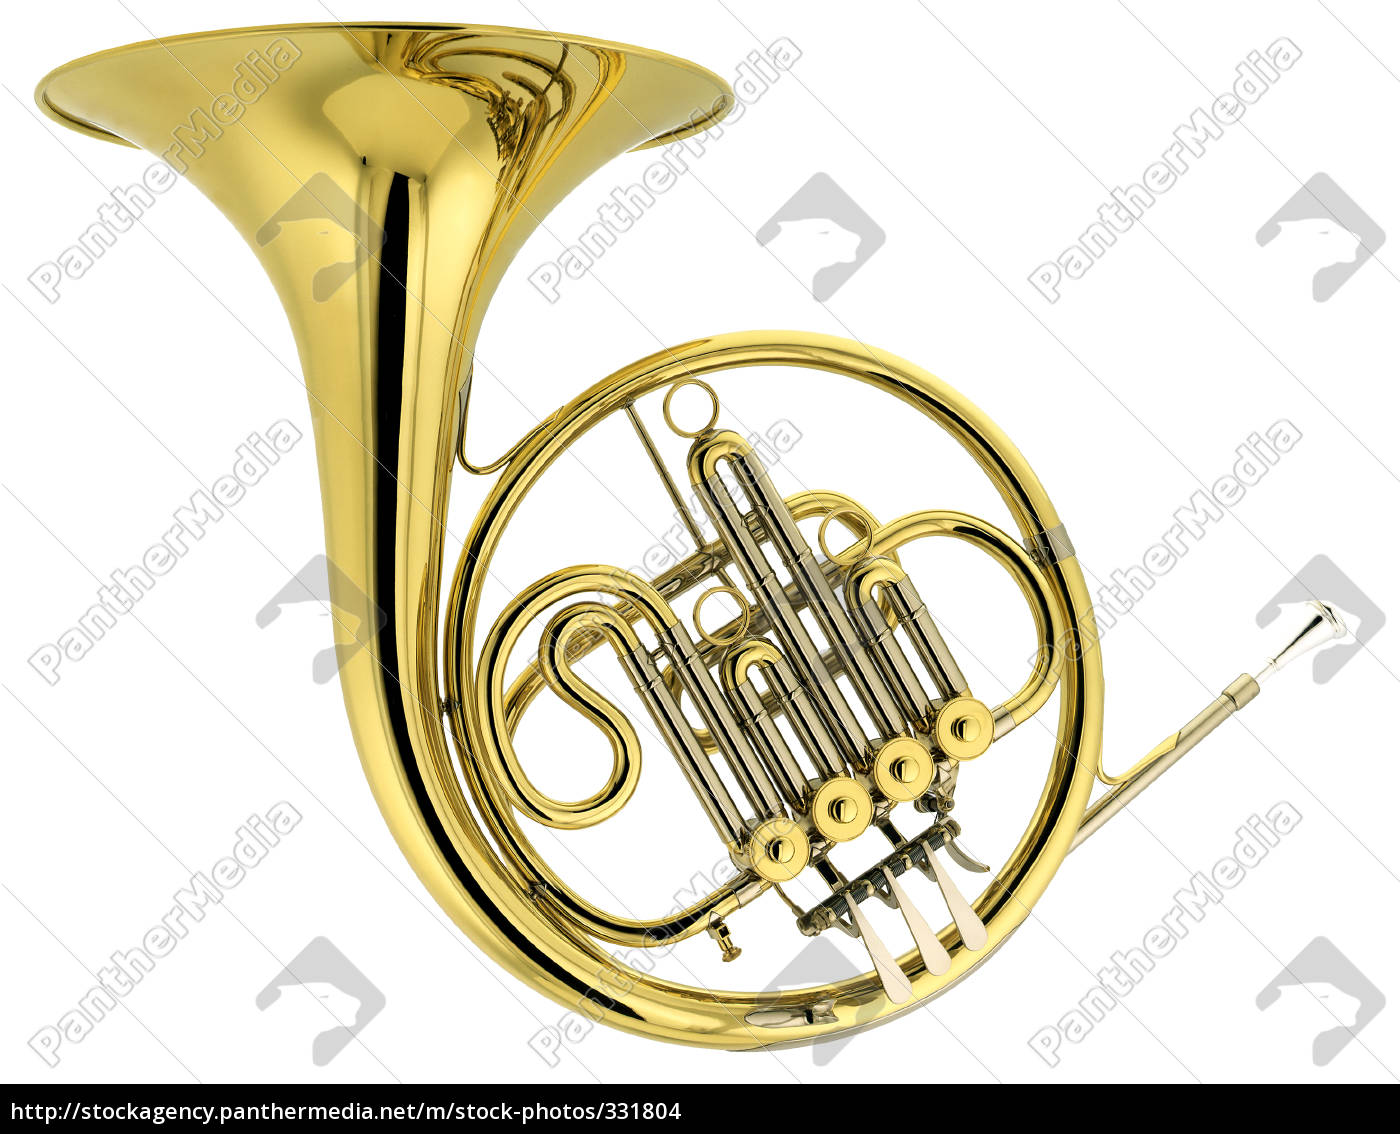 french, horn - 331804